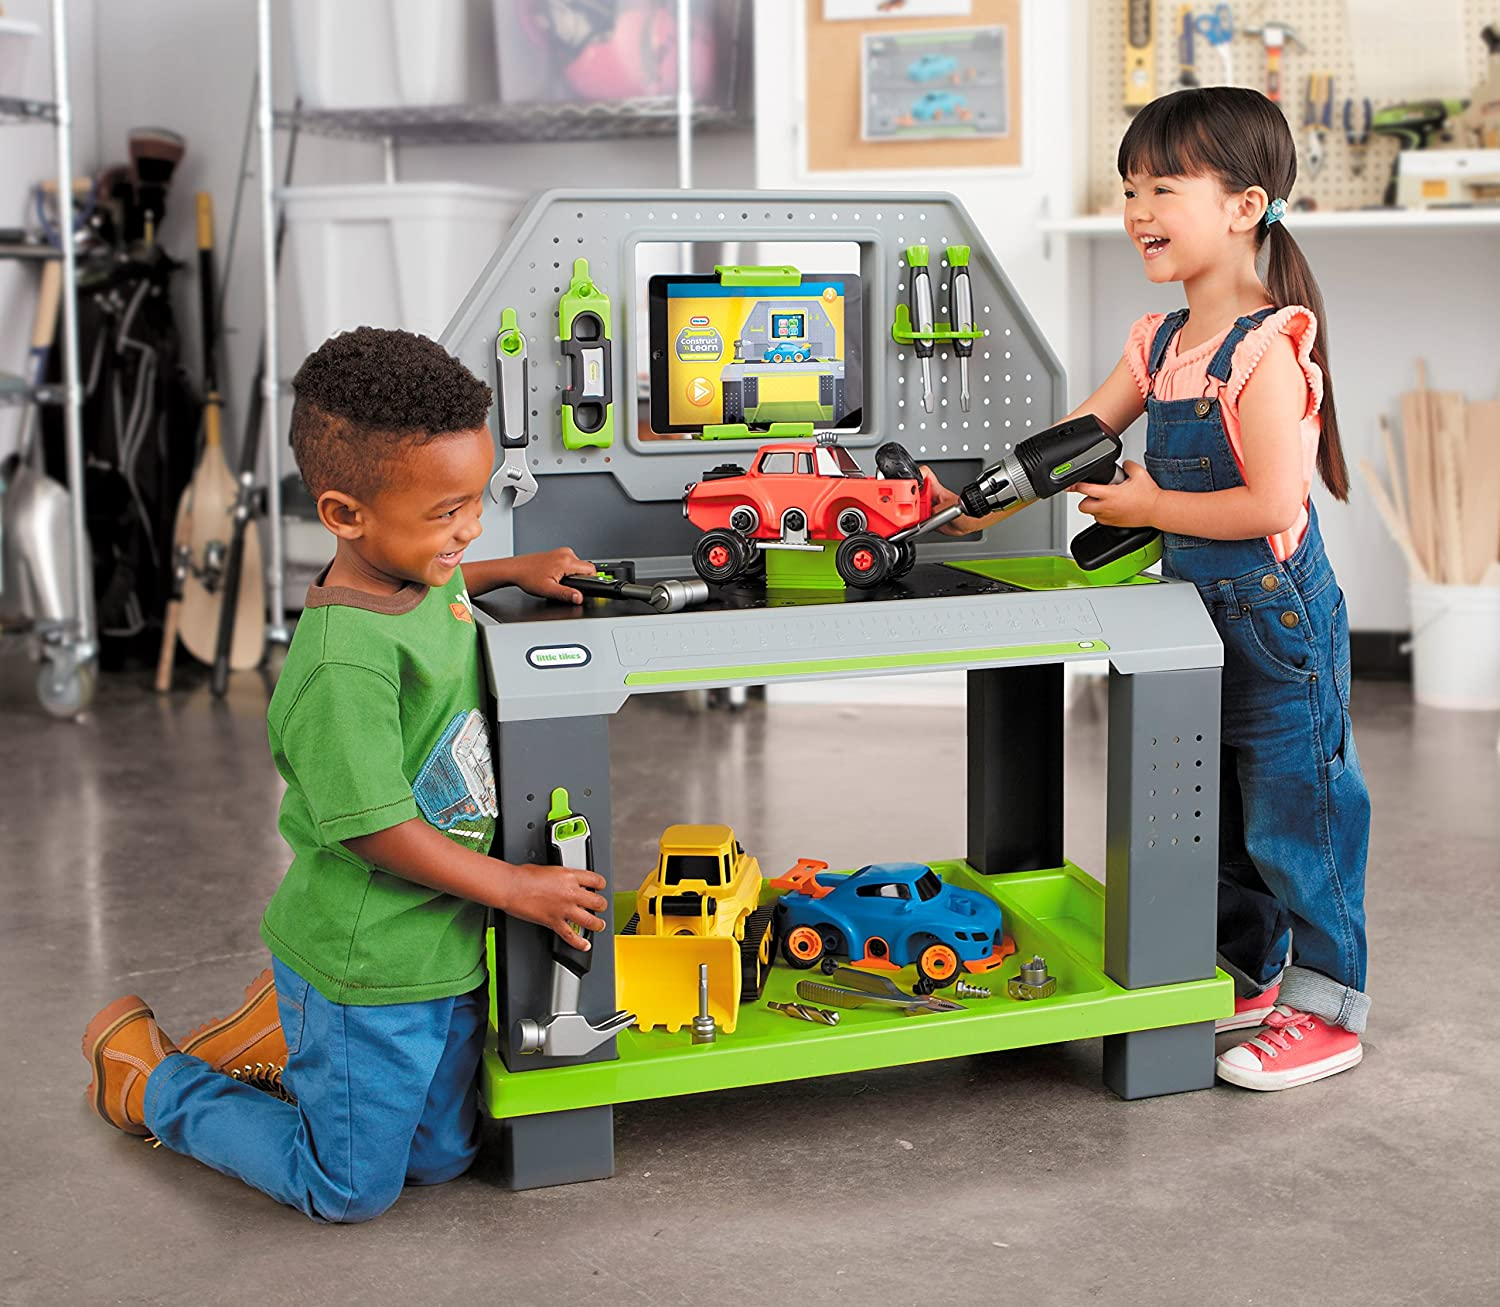 2218 Elenco Snap Circuits Jr Sc 100was 46 Toys Canada Best Deals 100 Electronics Discovery Kit New Factory Sealed 7116 Was 21999 Little Tikes Construct N Learn Smart Workbench Construction Tools